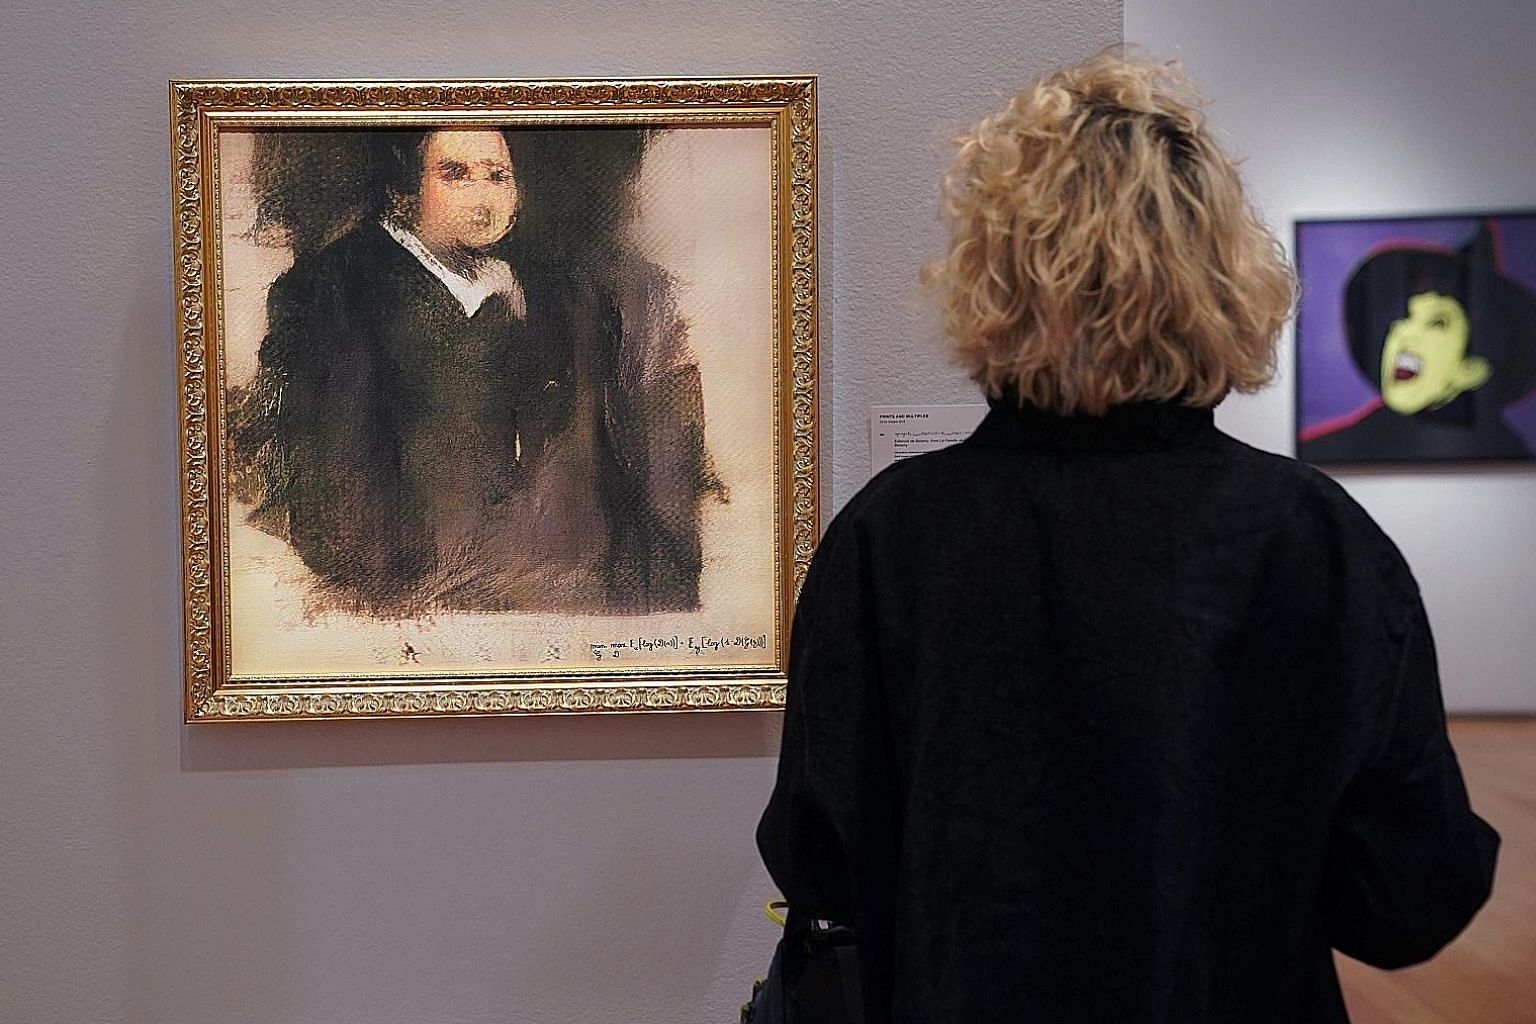 This painting, Portrait of Edmond de Belamy, was not drawn by an artist but generated by artificial intelligence. It was sold to an anonymous buyer for US$432,500 (S$594,600) at Christie's in New York on Oct 22.